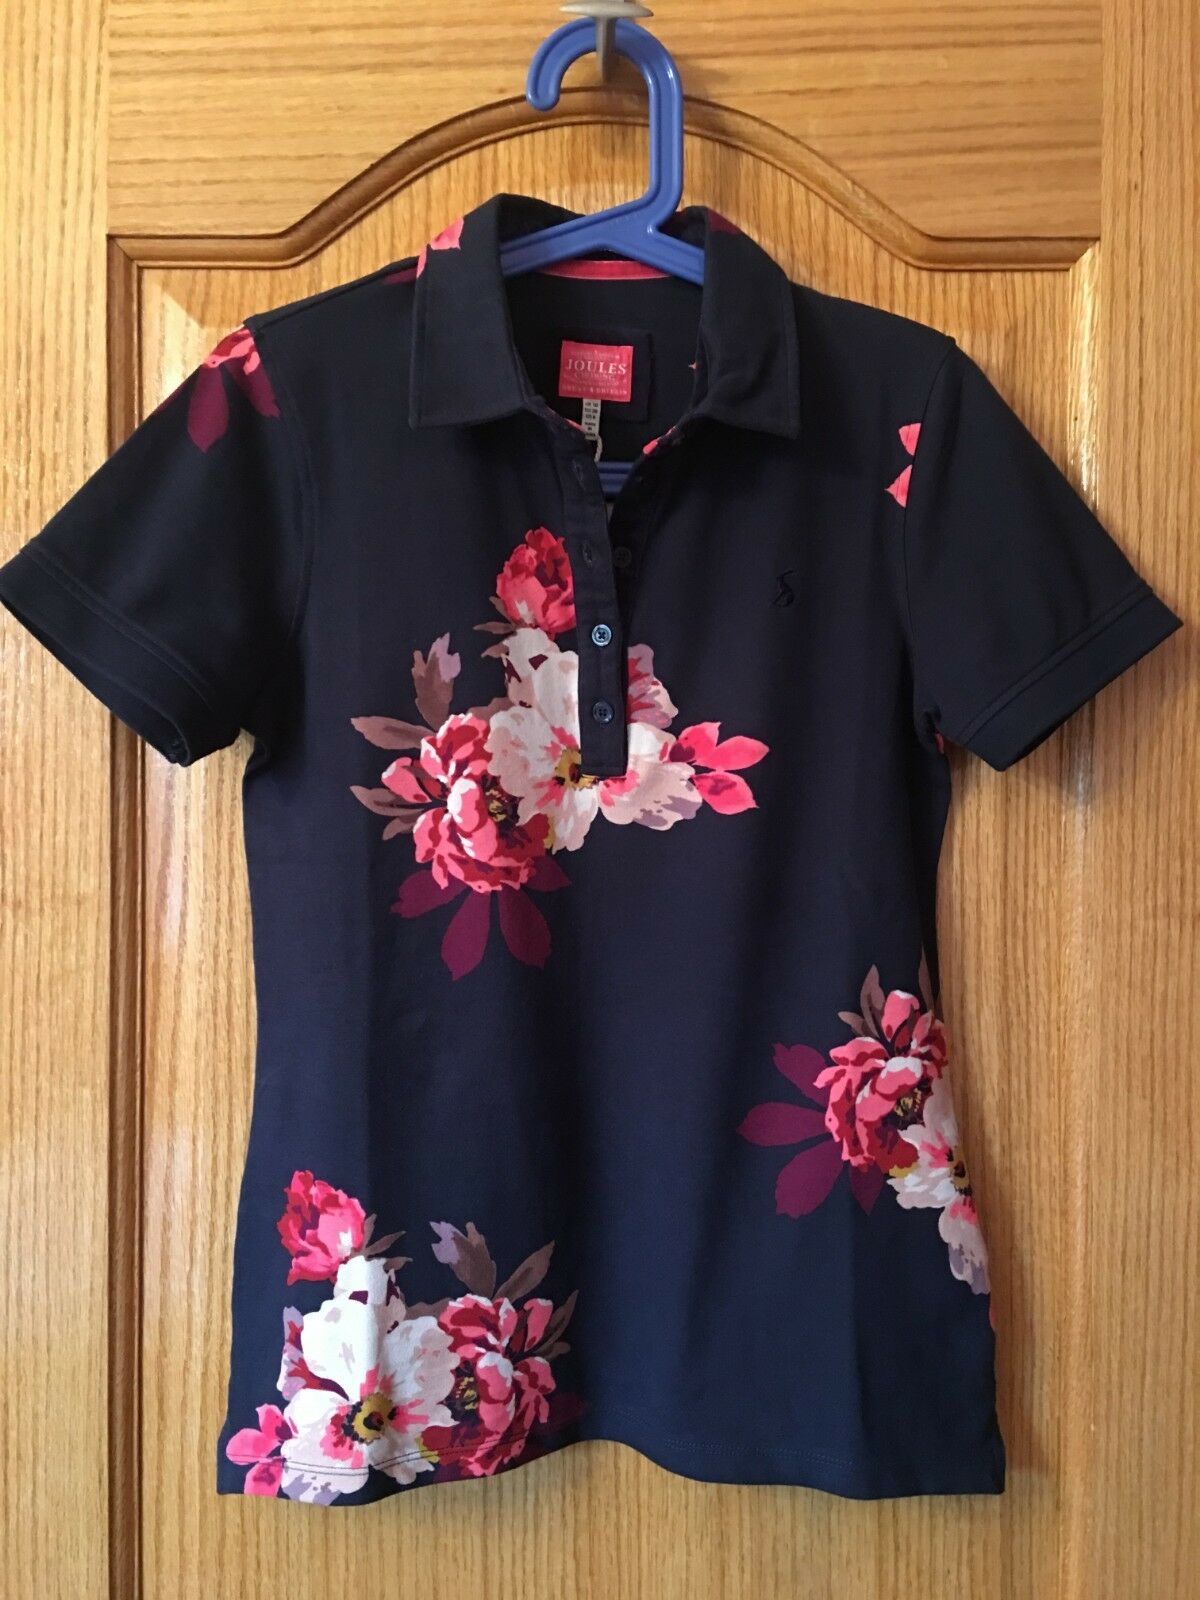 NWT Ladies JOULES French Navy Bircham Bloom PIPPA Print Polo Shirt Sz US 6